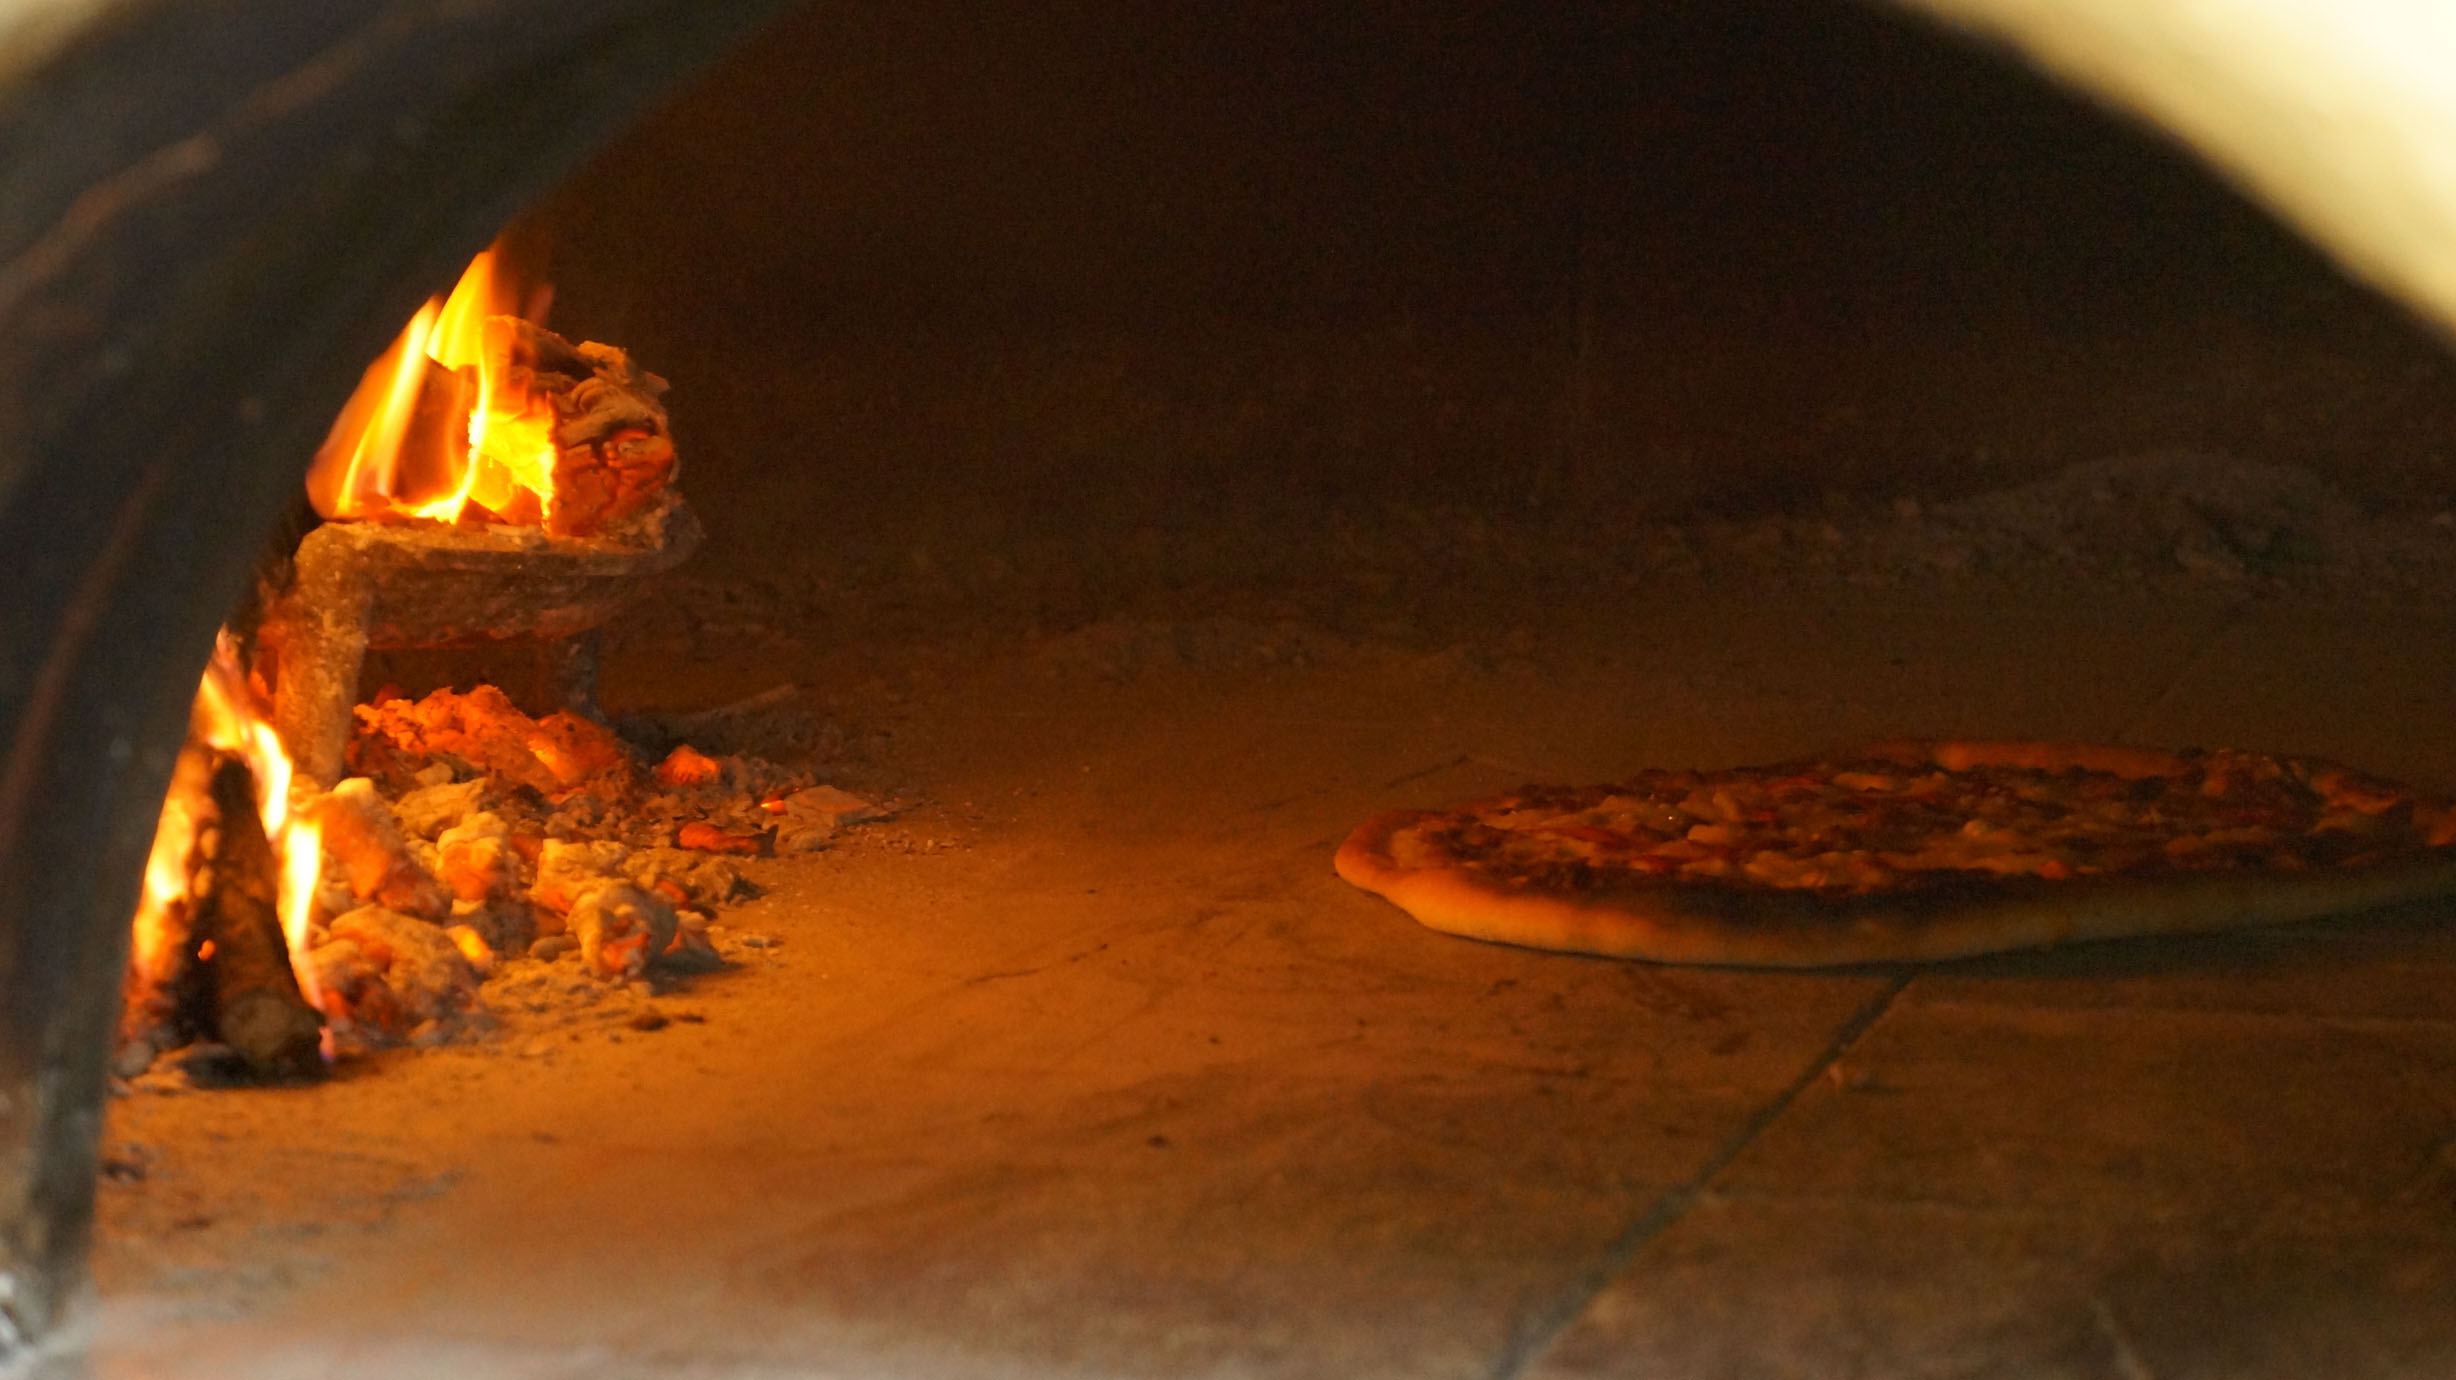 Wood-fired pizza made every Saturday at the school.